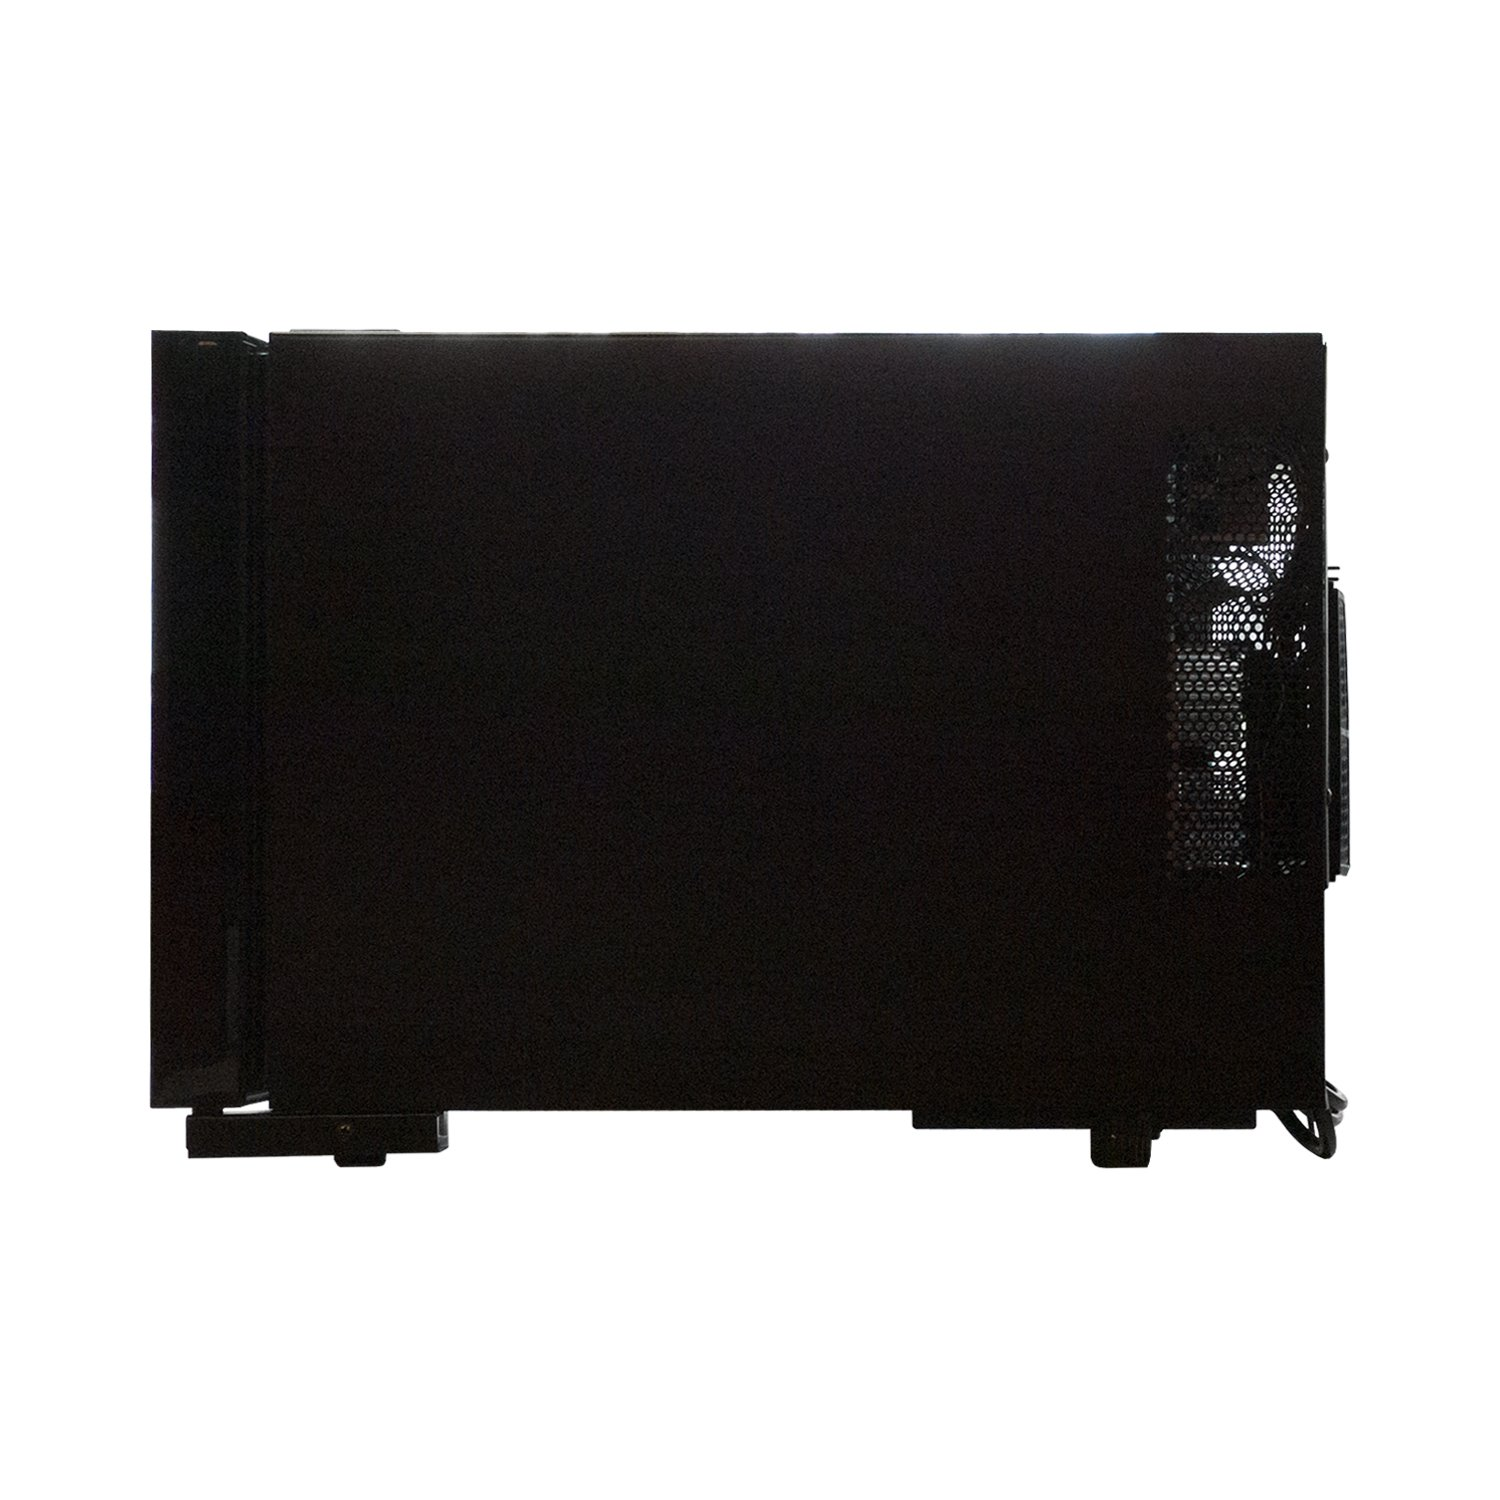 Magic Chef MCWC6B 6 Bottle Countertop Wine Cooler, Black by Magic Chef (Image #6)